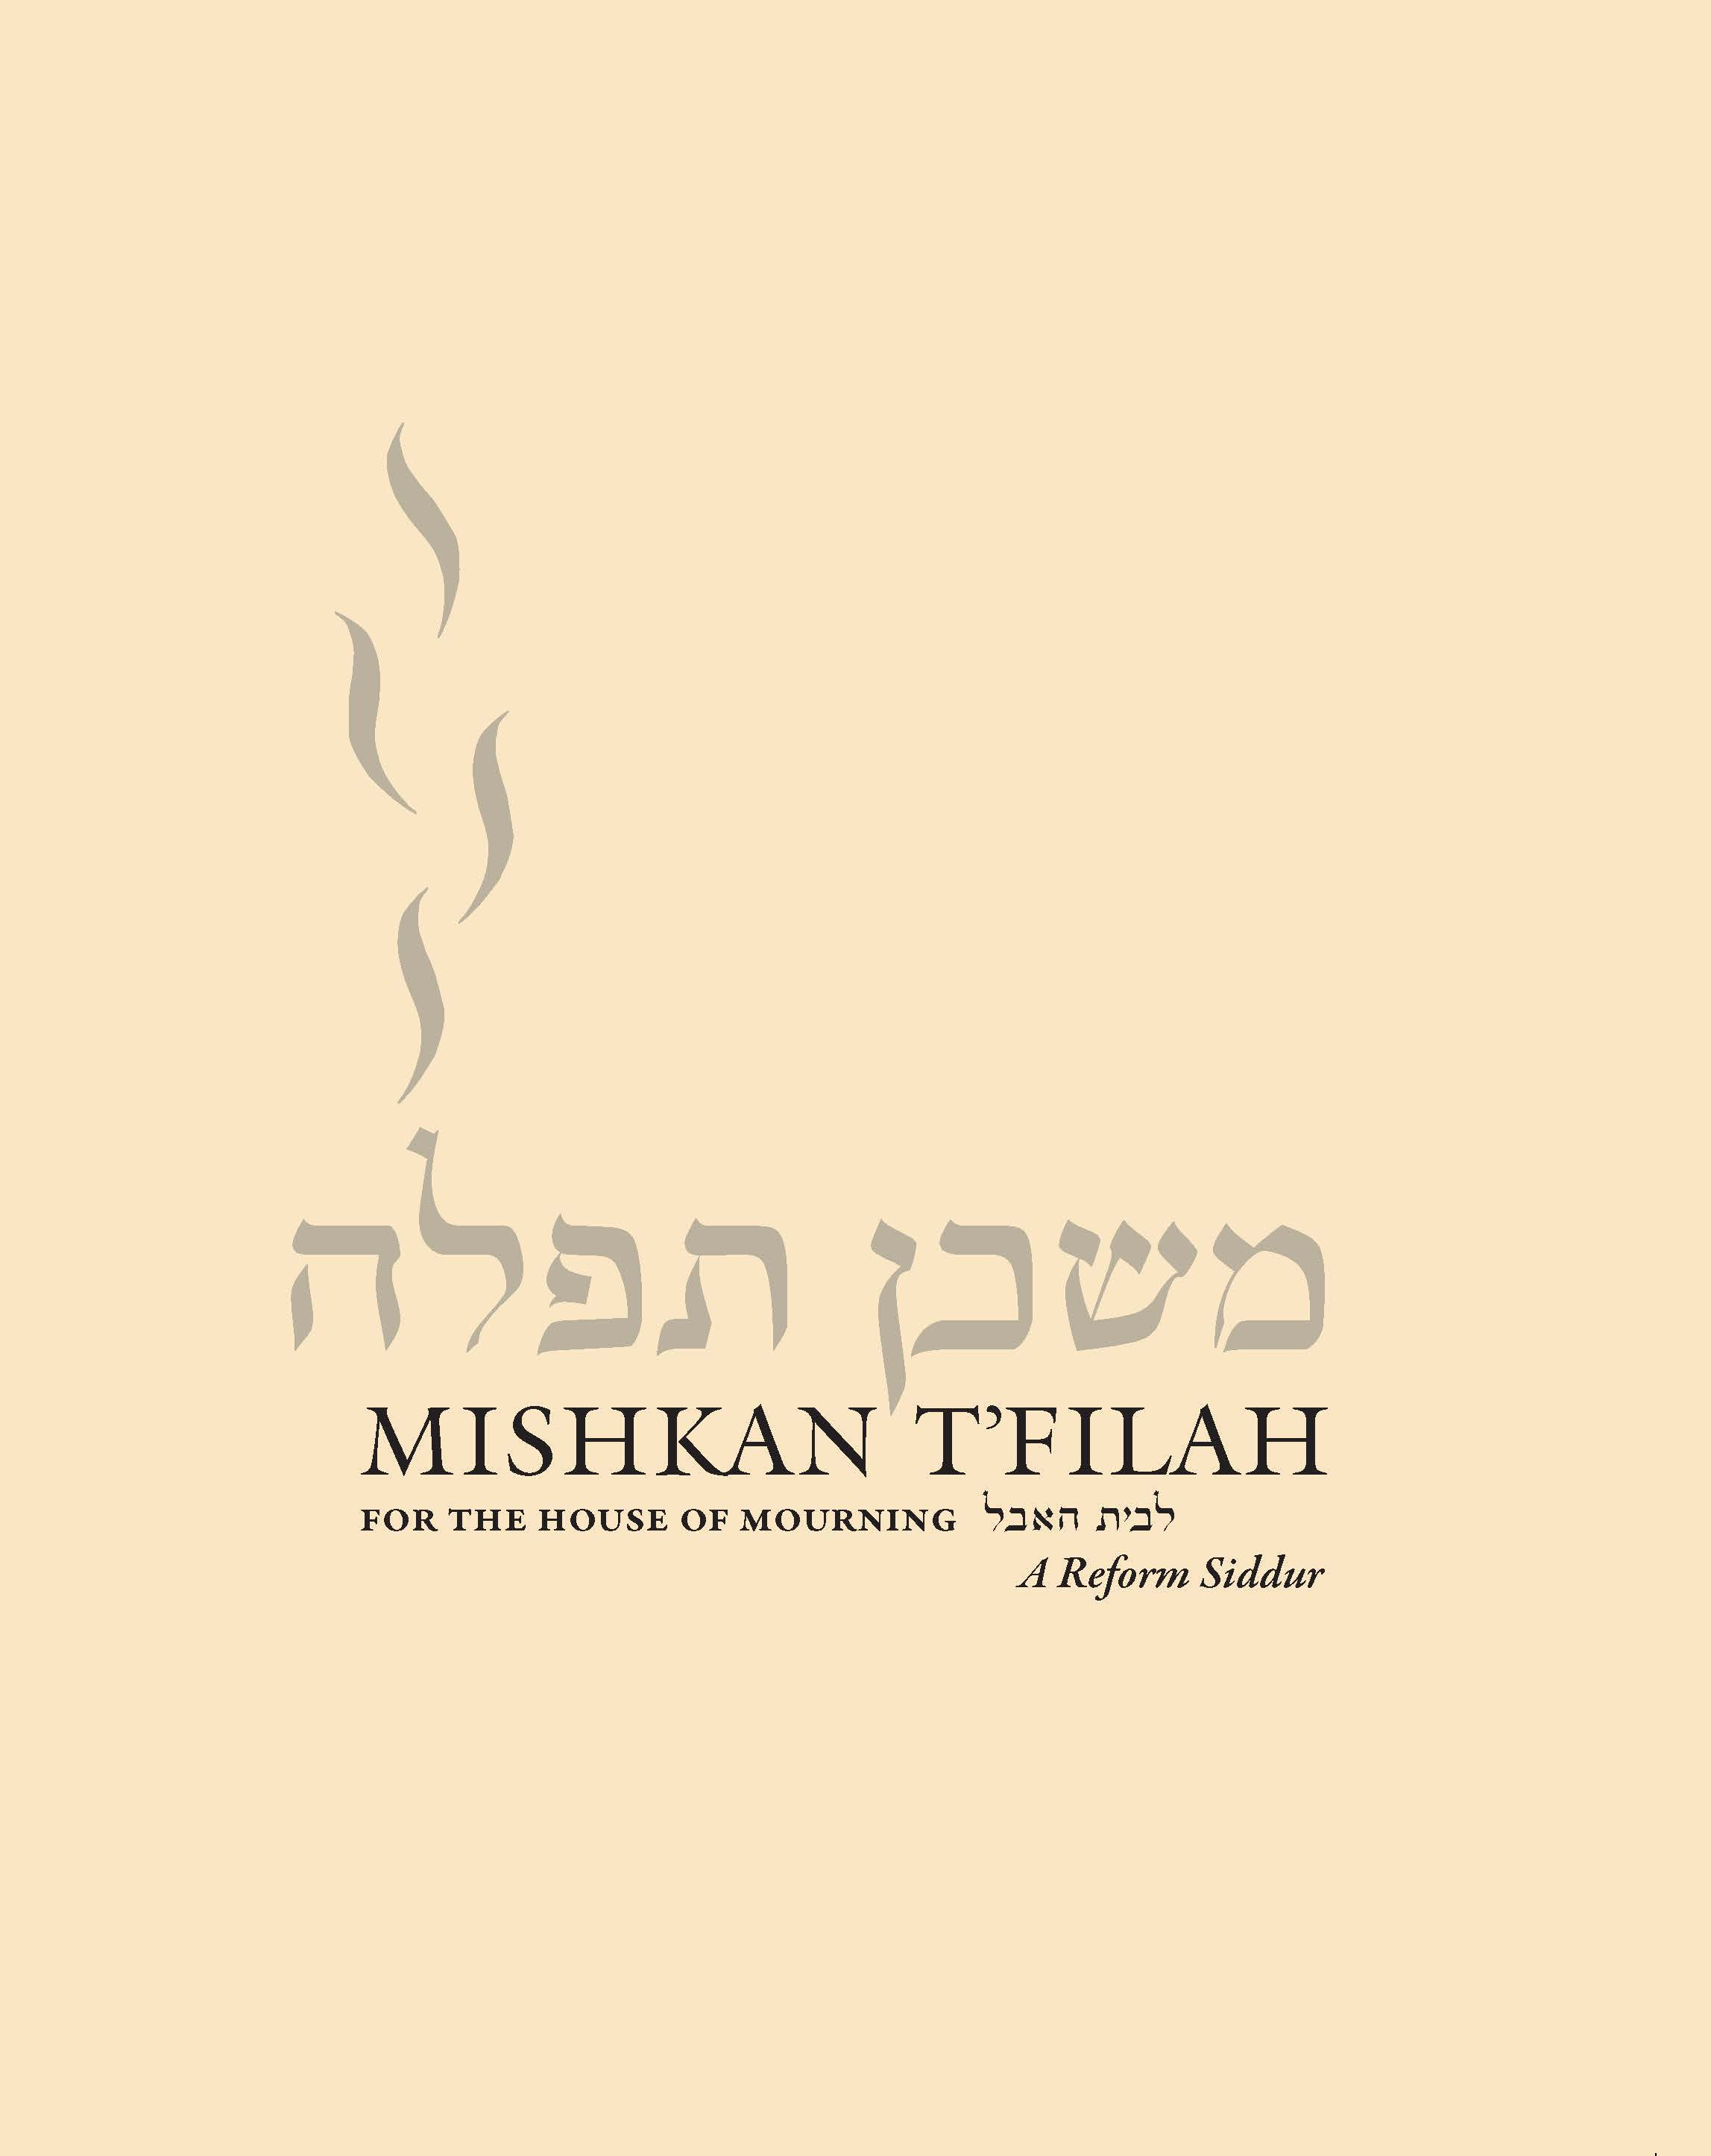 Mishkan T'filah for the House of Mourning